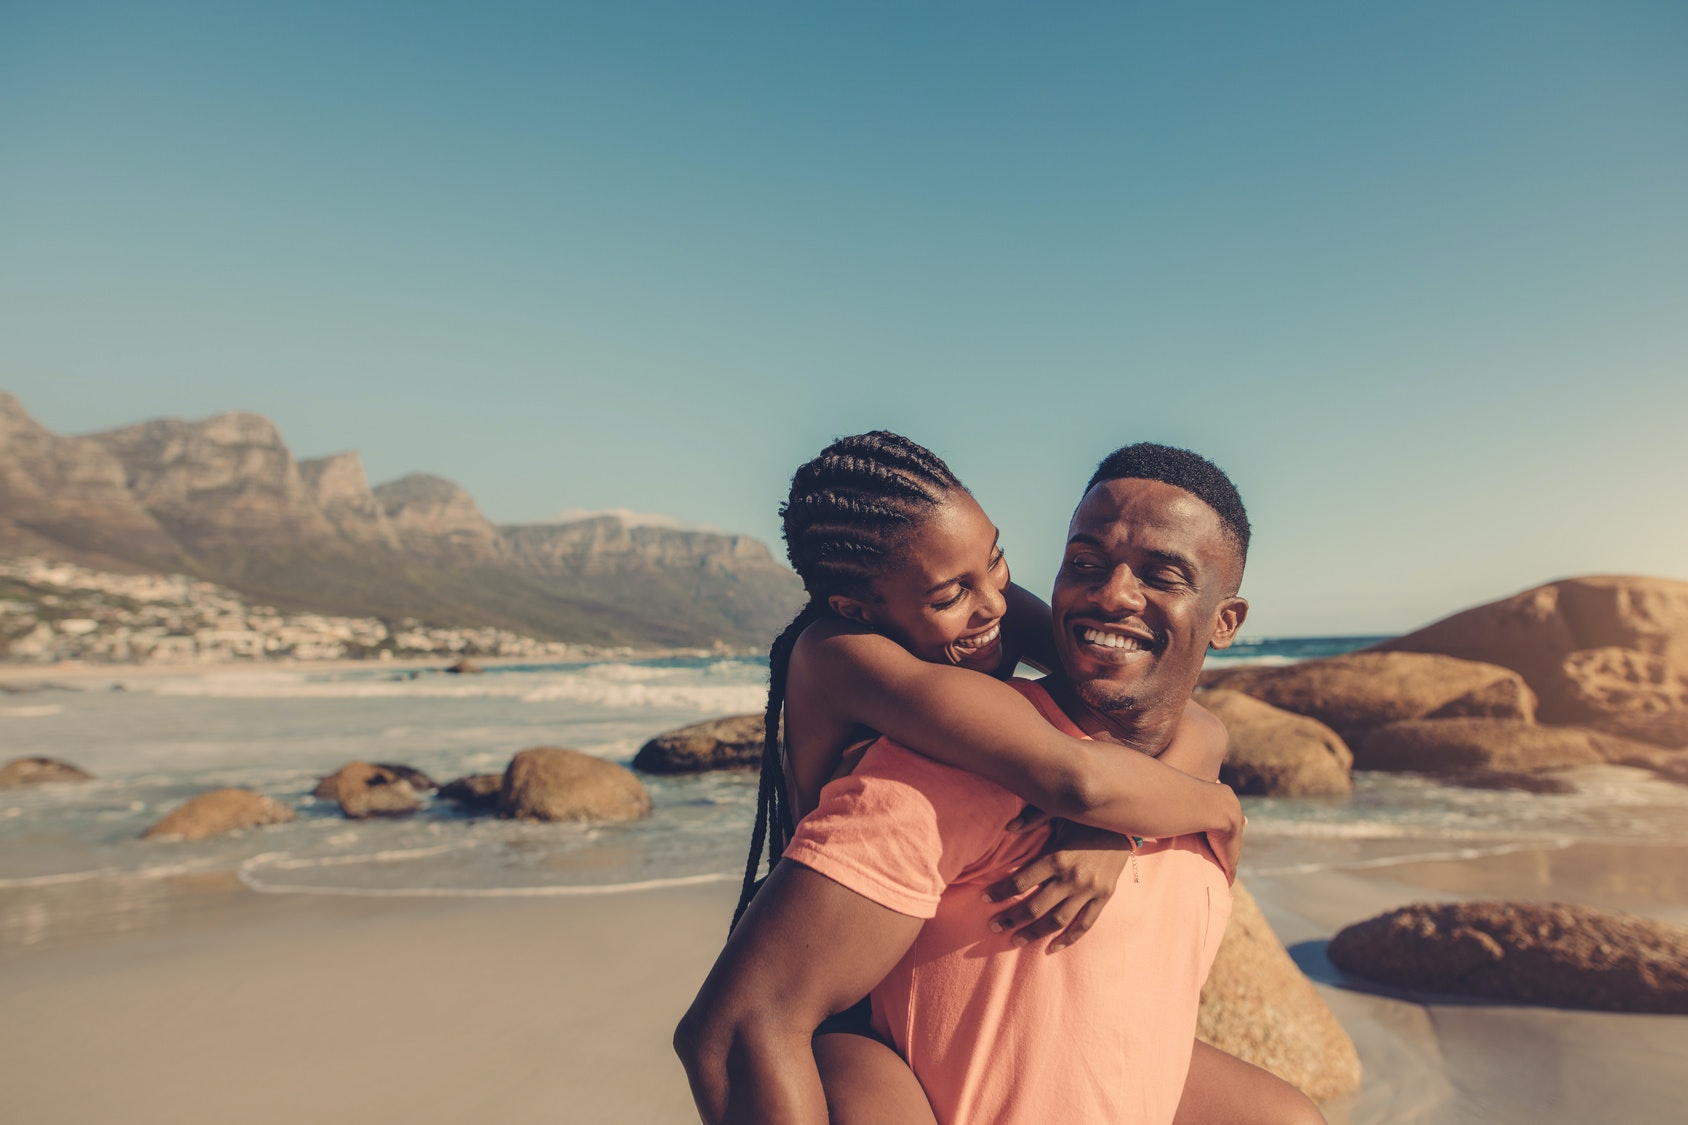 1,500 People Share the Secrets ofHappy Relationships